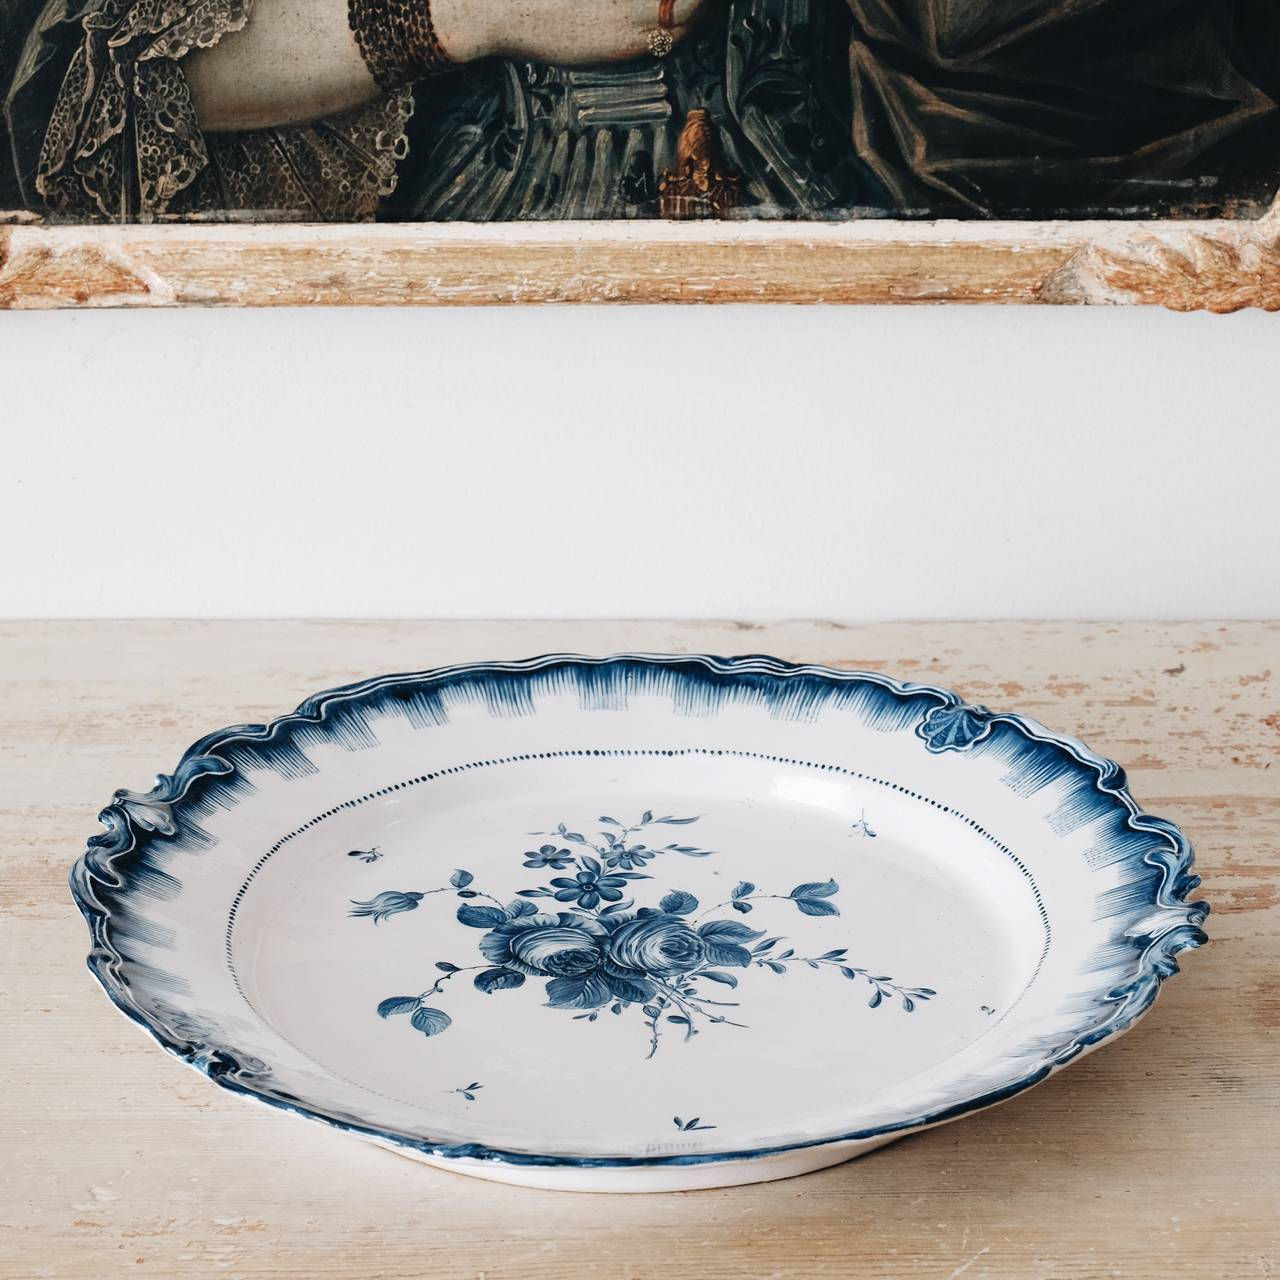 Unusually large Richly decorated Swedish faience plate from Marieberg porcelain factory in good condition. Dated 1766 and signed with three crowns/MB E.   Johan E L Ehrenreichs period 1758-1766  Signature Maker AB - Anders Berggren (1761-1775)